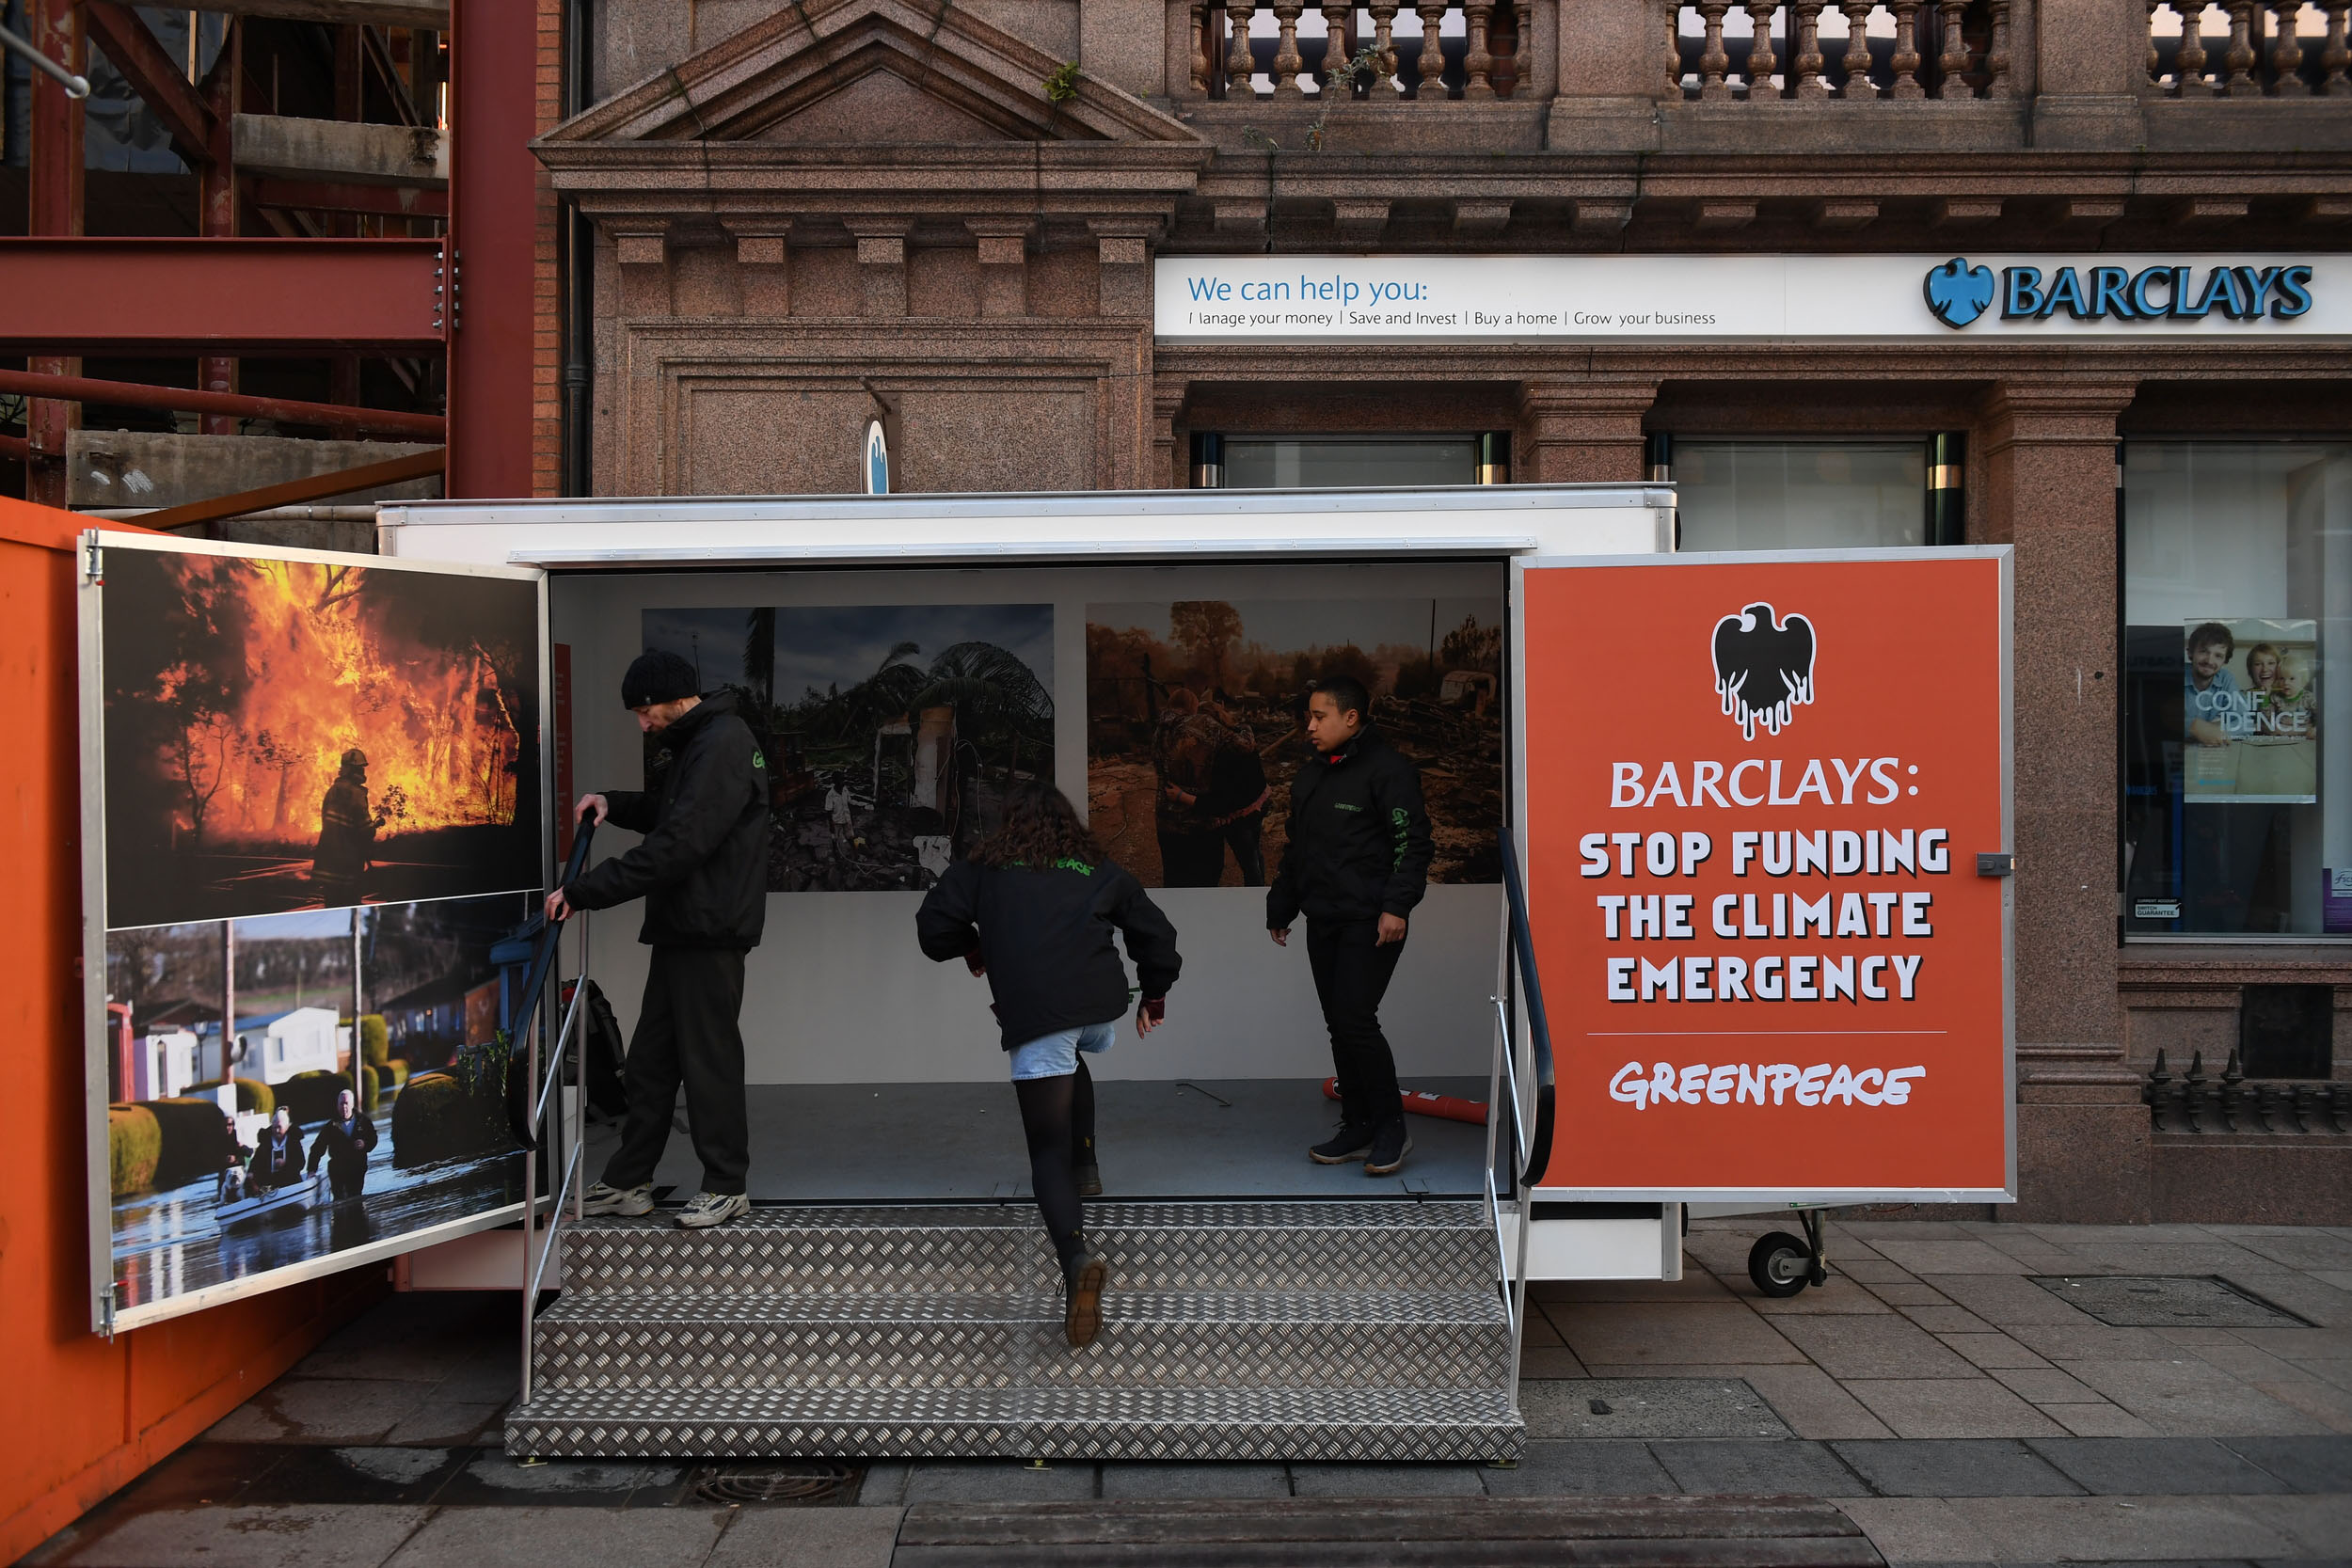 Members of the public look at photos of destruction caused by climate change, displayed in a temporary container placed in front of the entrance of a Barclays Bank branch